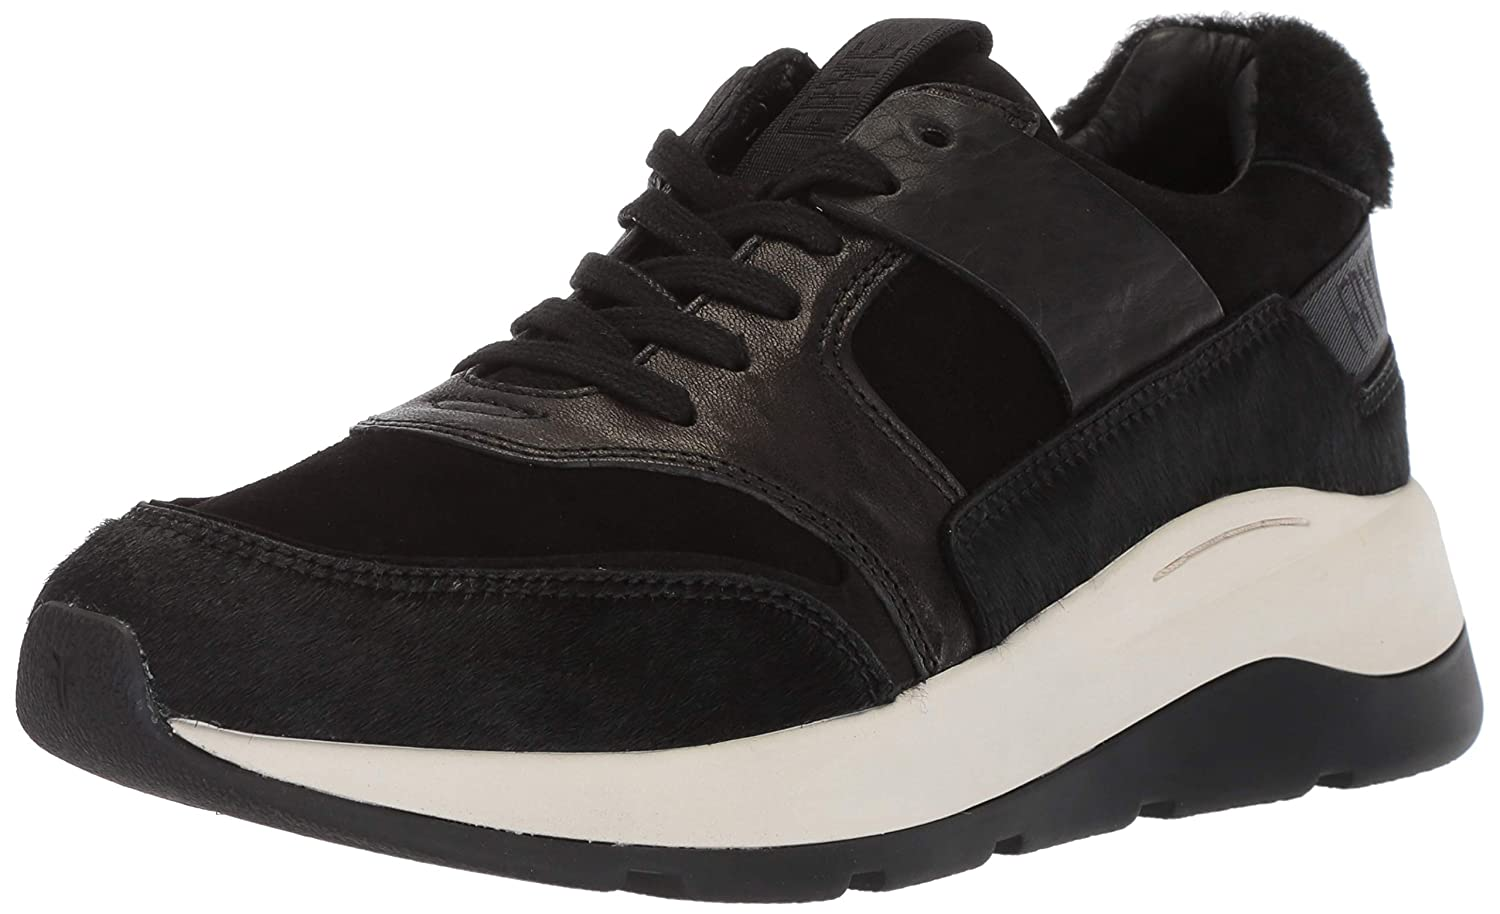 FRYE Women's Willow Low Lace Sneaker